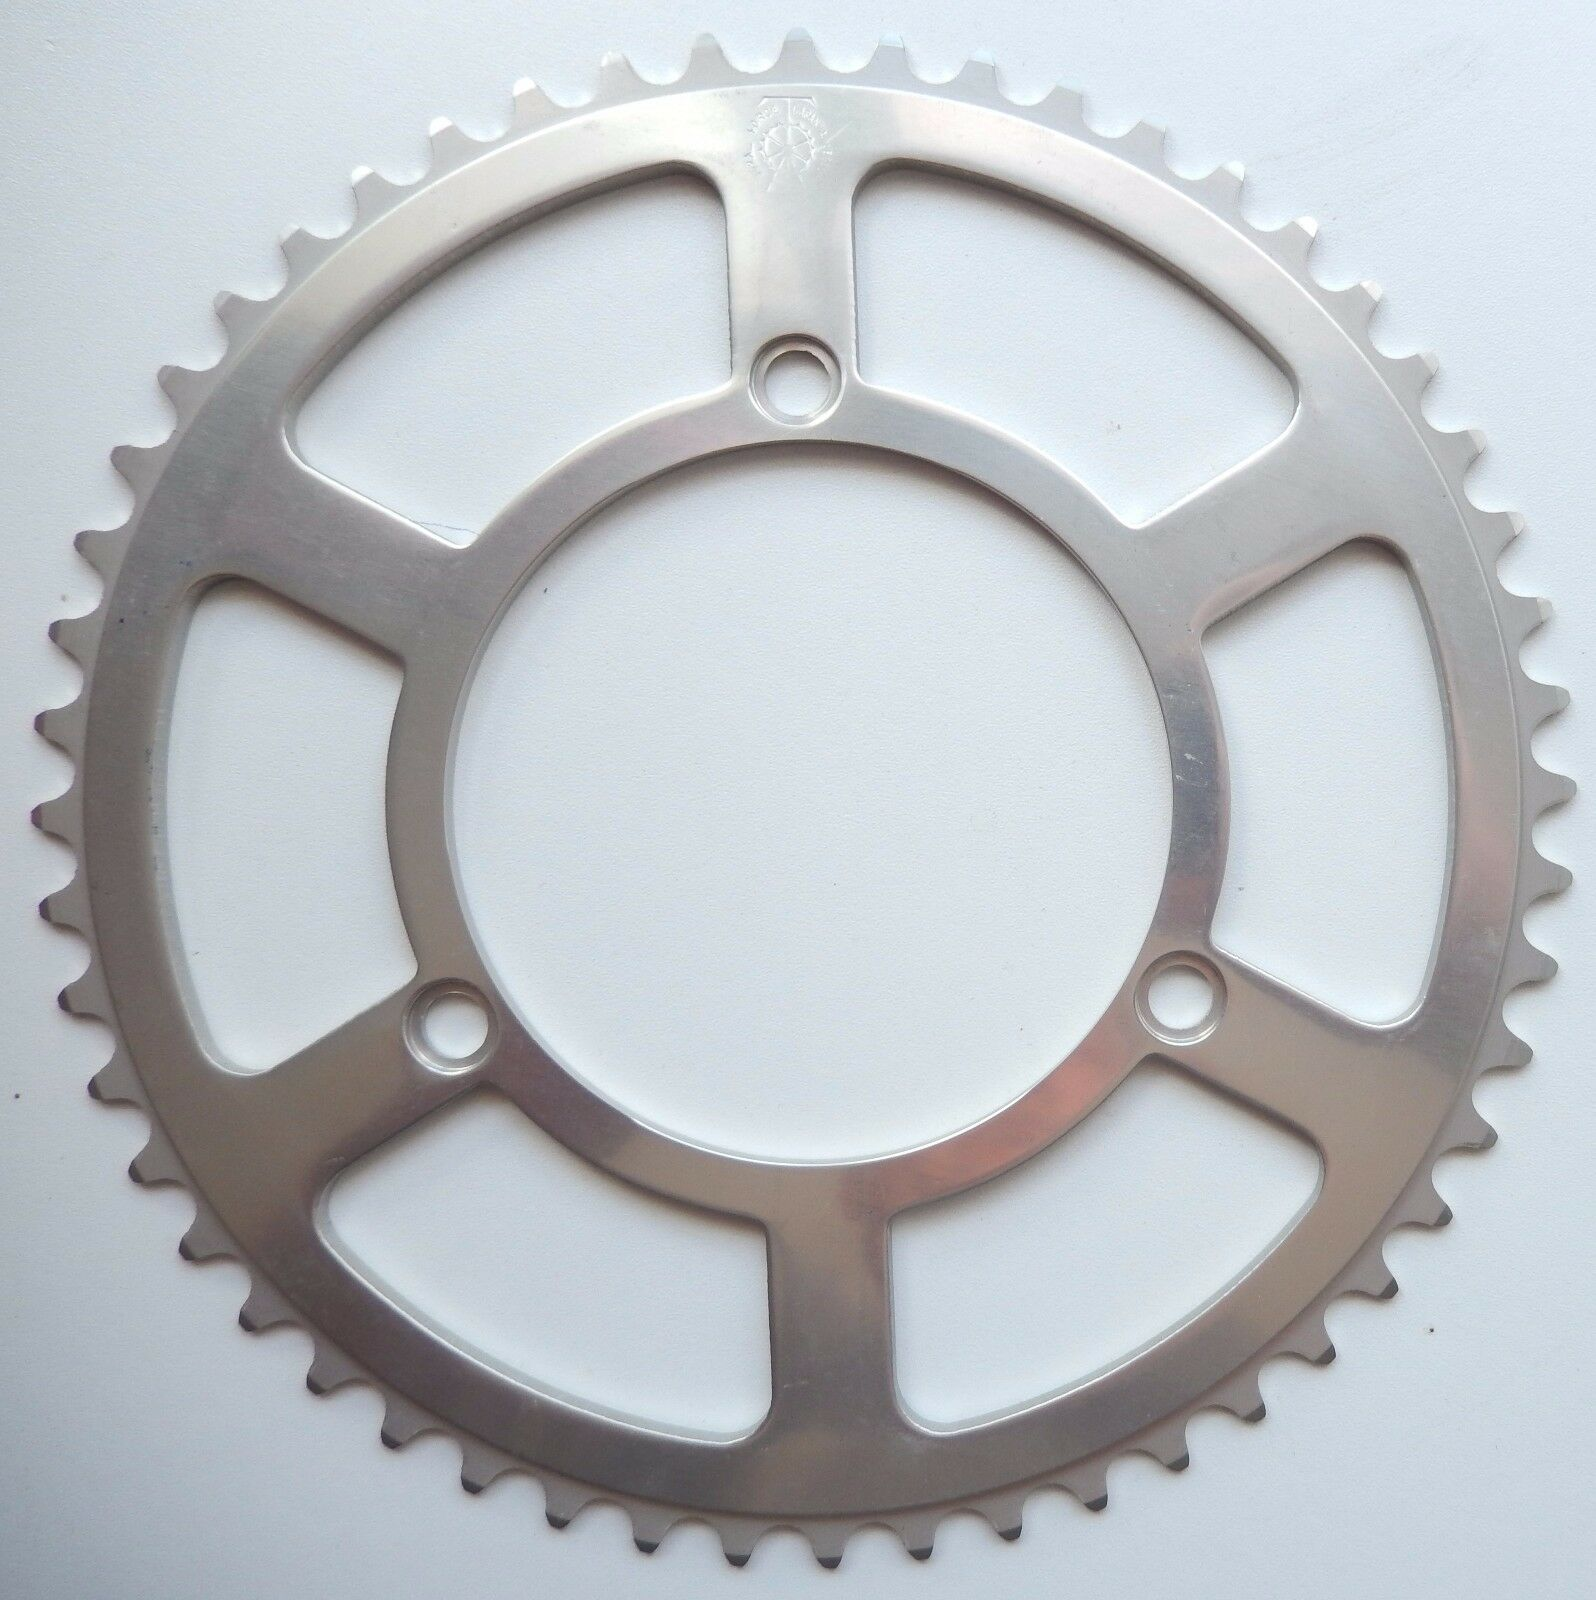 NOS  VINTAGE T.A TEVANO 3 holes CHAINRING  52 - PLATEAU (52a)  lowest prices